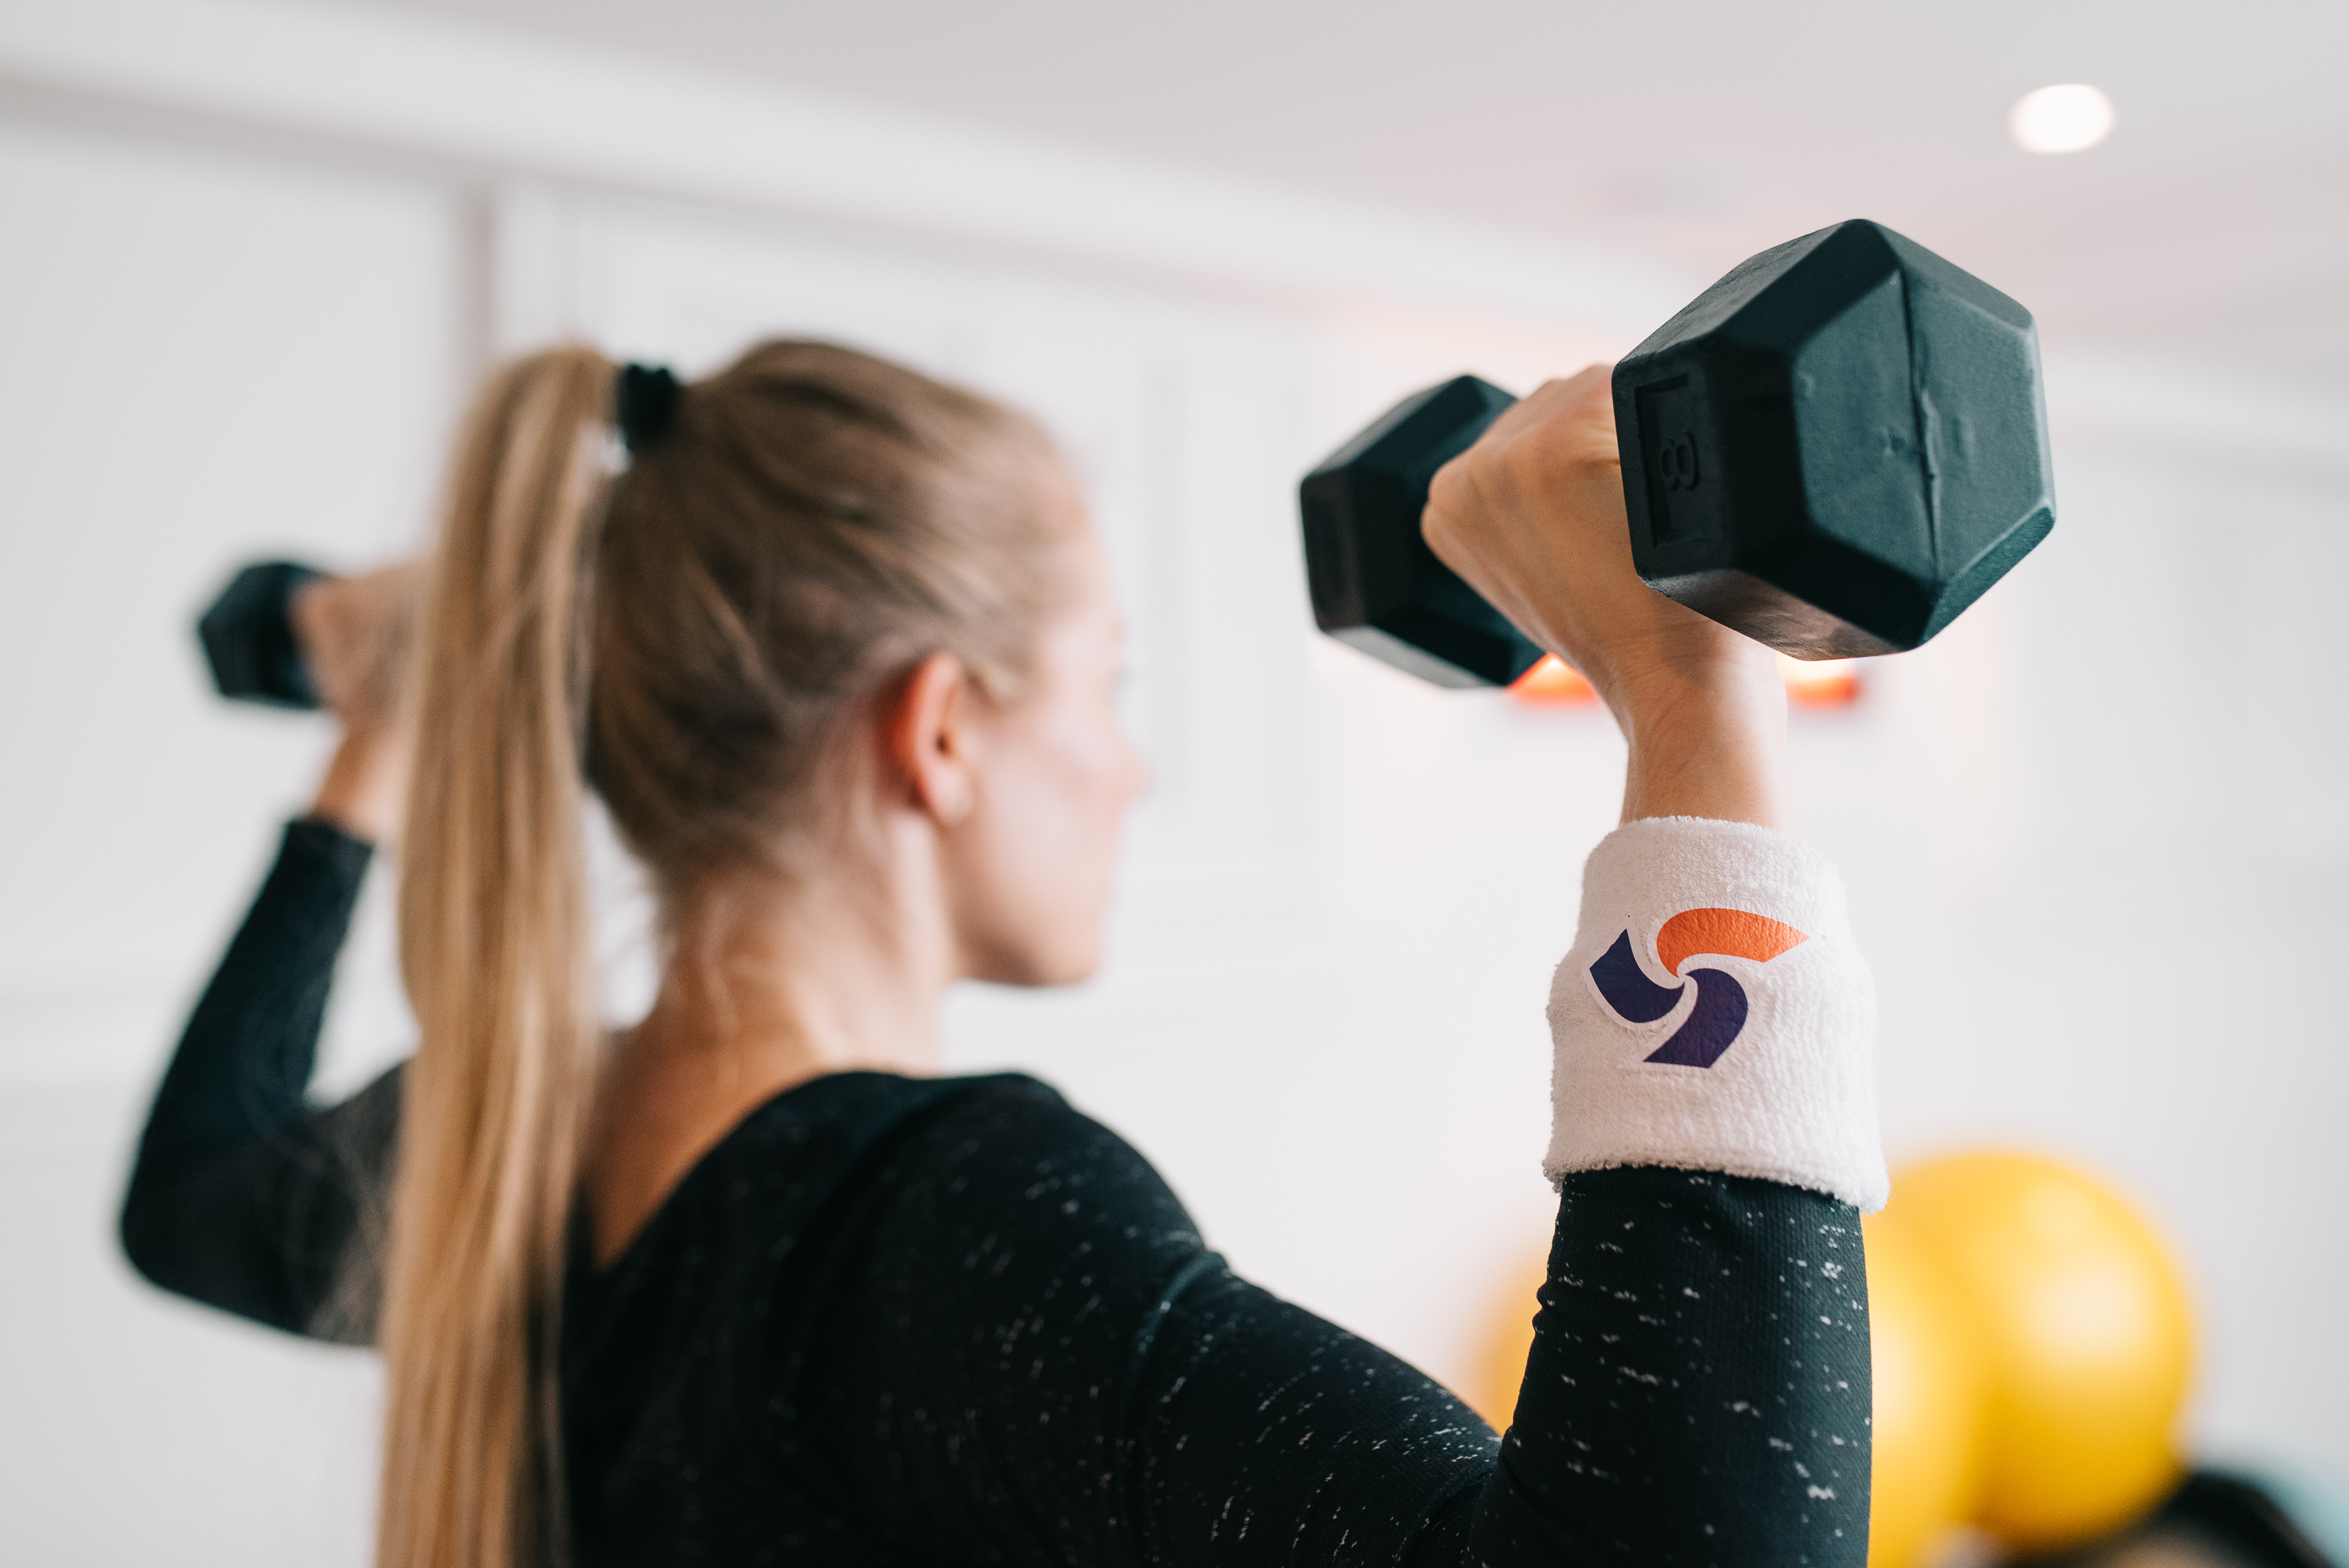 woman lifting weights with PAC wristband on